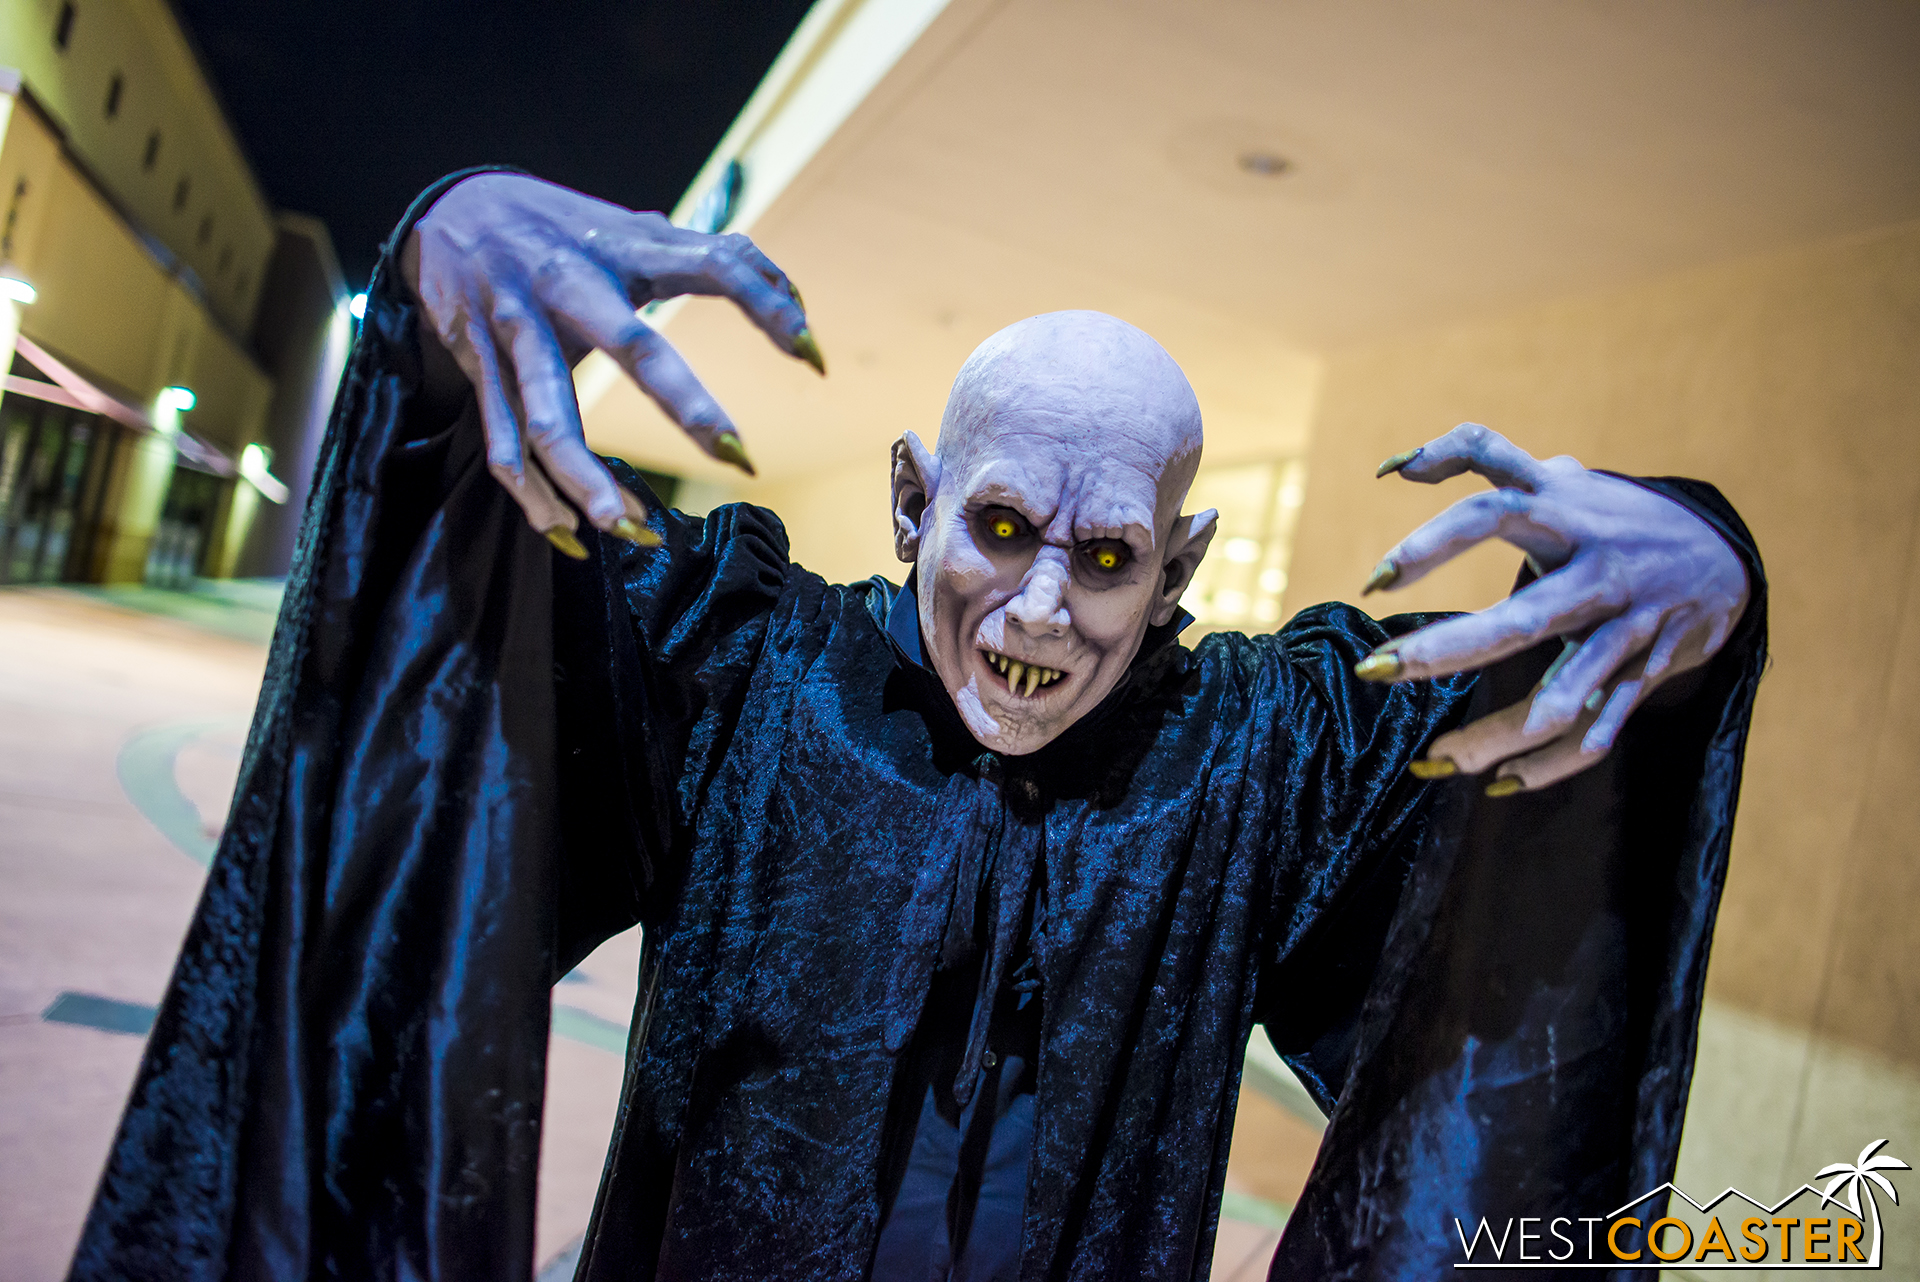 As is customary at haunts, a few monster talent spook around the line outside.